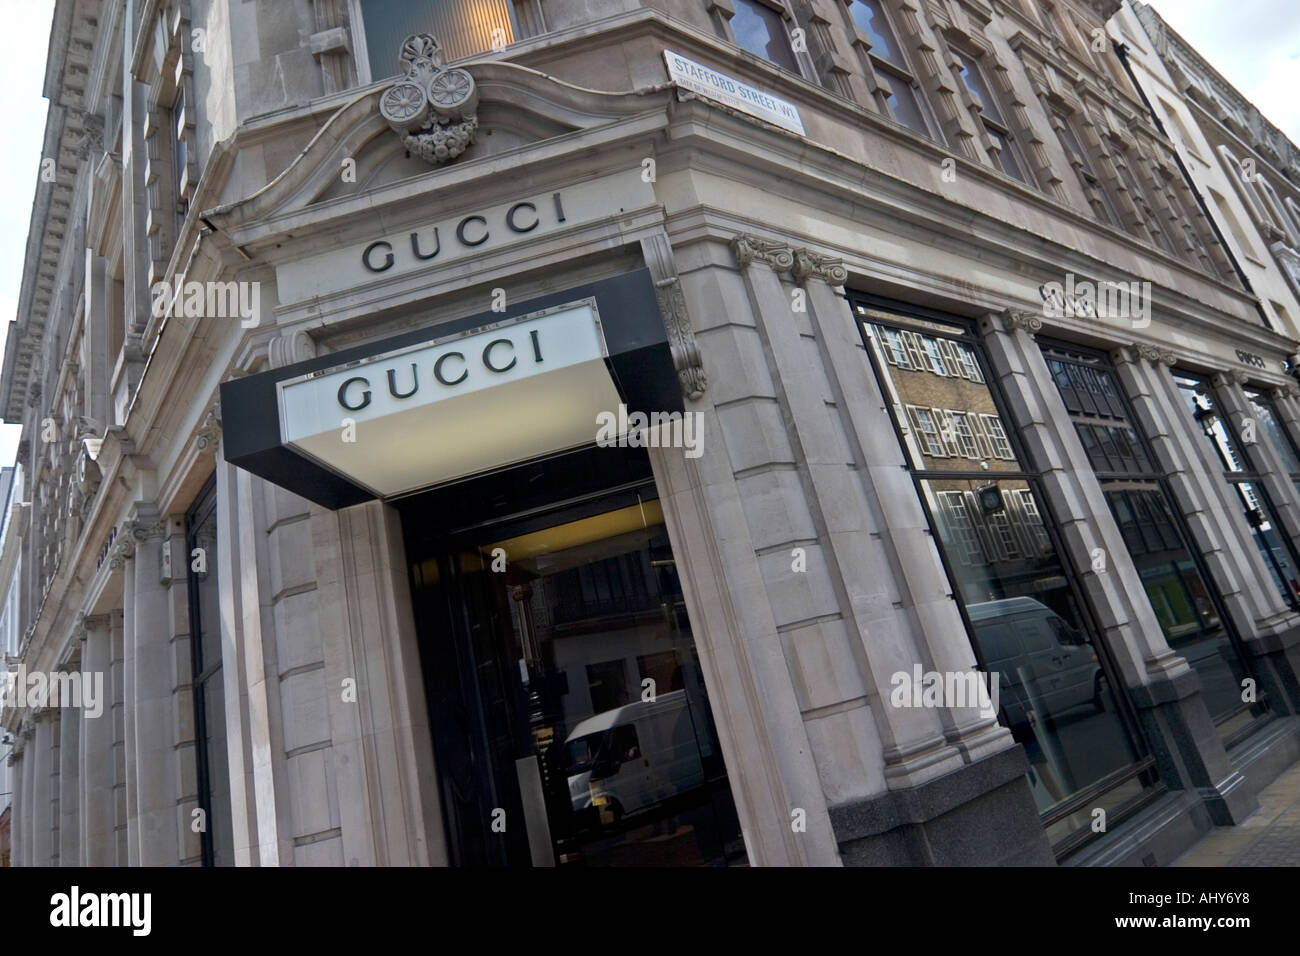 8d4602e72f Gucci Store Bond Street Stock Photos & Gucci Store Bond Street Stock ...